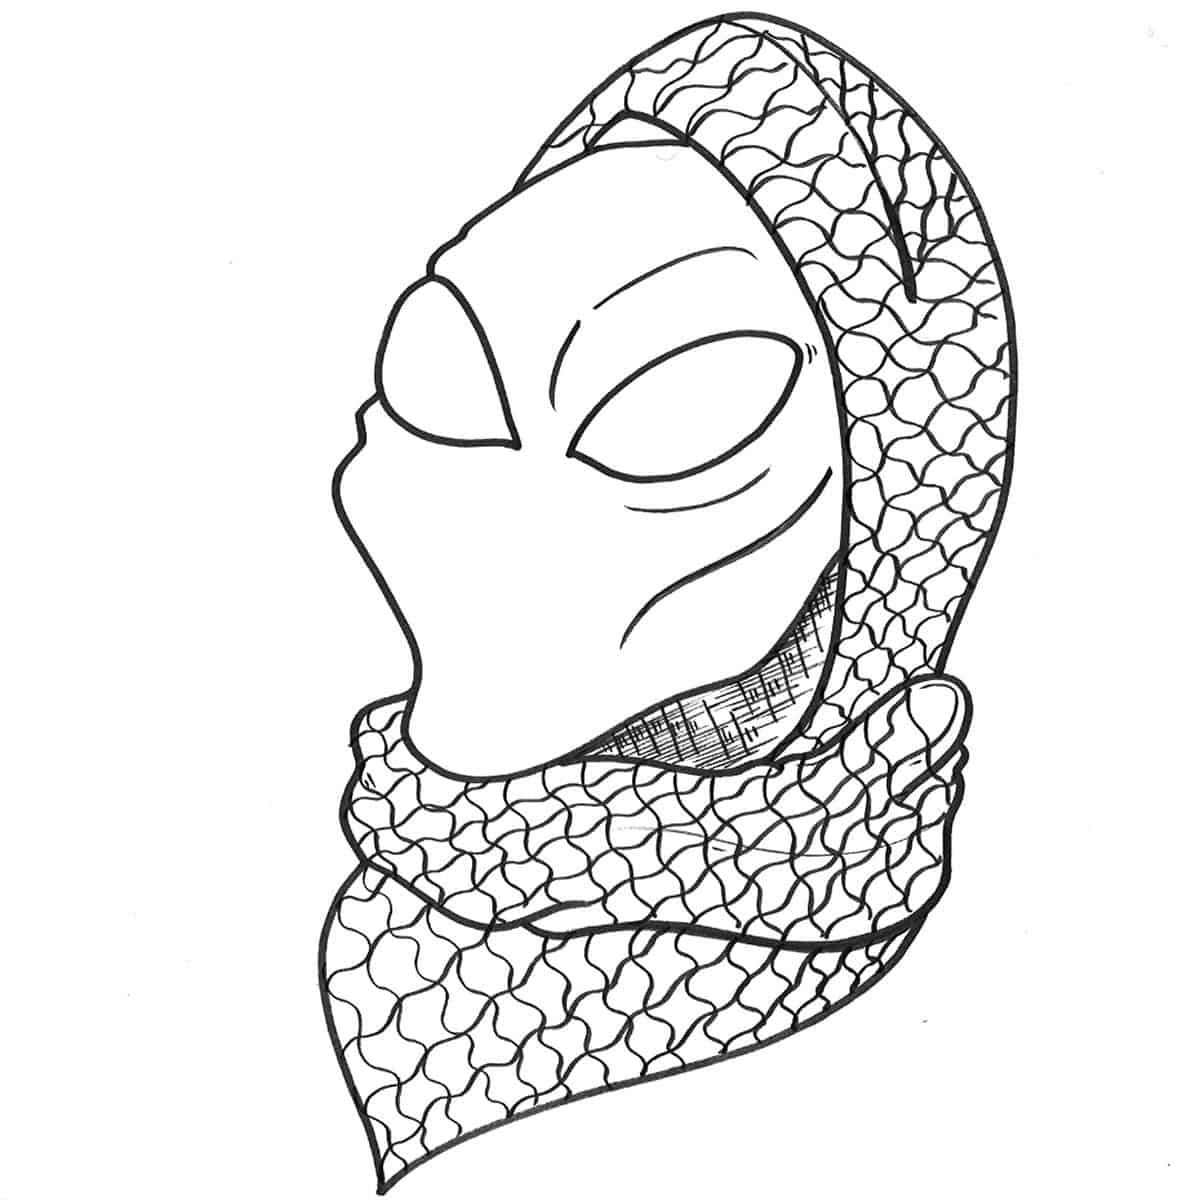 drawing of bust, alien-like face wearing a head scarf